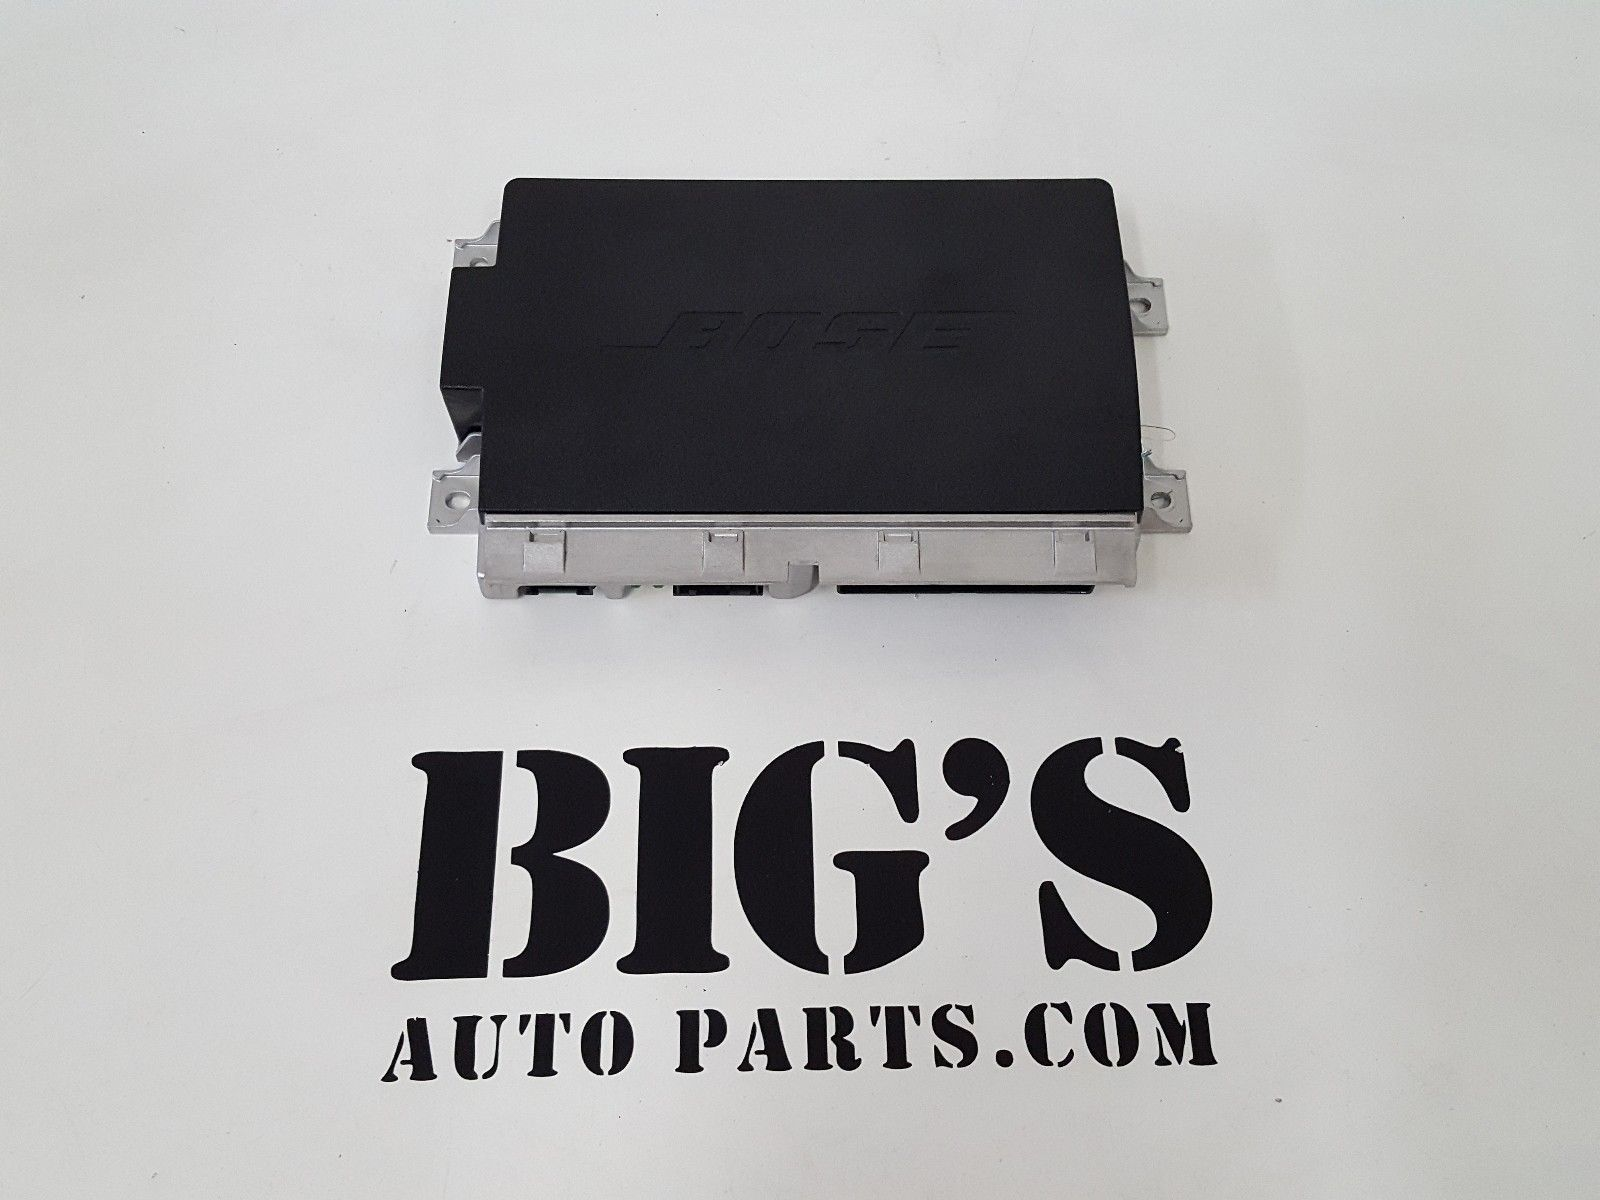 2016 2017 2018 AUDI A6 S6 RS6 A7 S7 RS7 Quattro Sound System-Amplifier OEM  USED